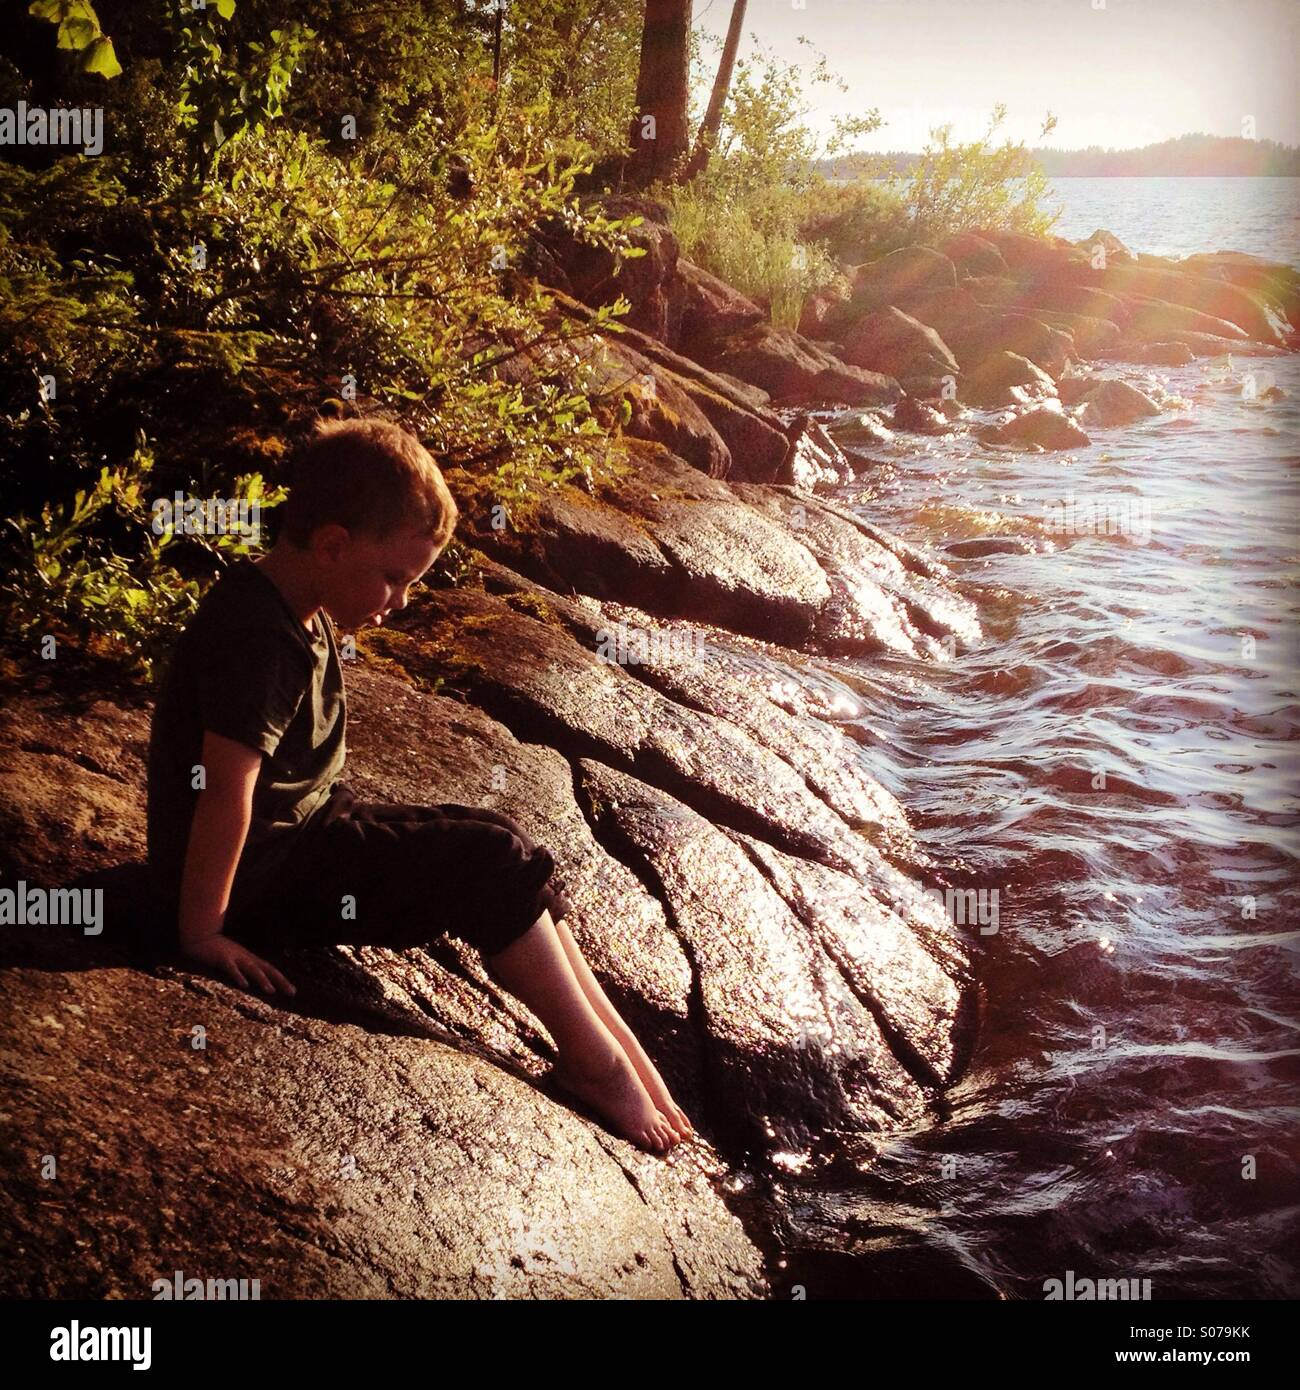 A young boy dipping his toes in the water at a Nordic Scandinavian summerhouse lake - Stock Image